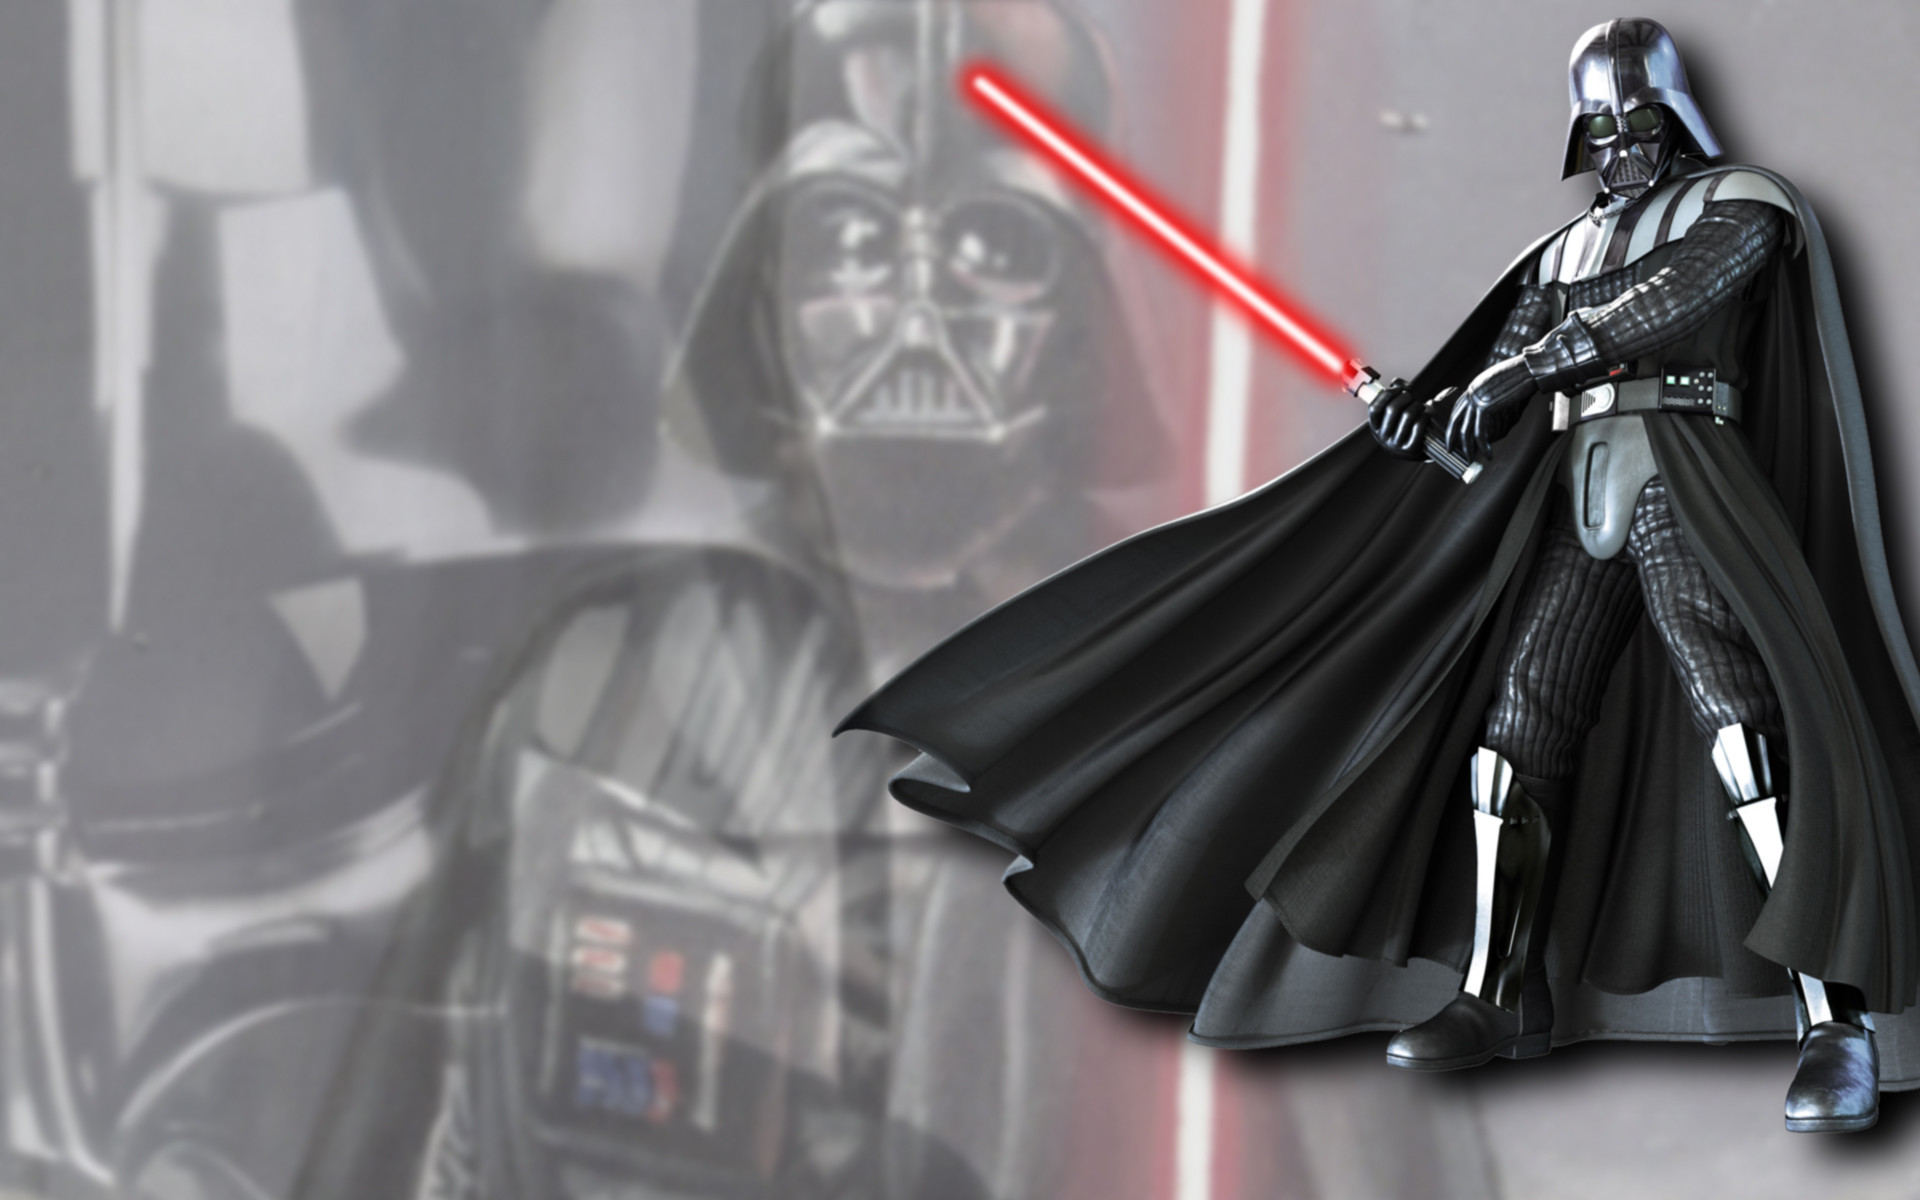 1920x1200 Star Wars, lightsabers, Darth Vader, Sith, Anakin Skywalker - related  desktop wallpaper ...